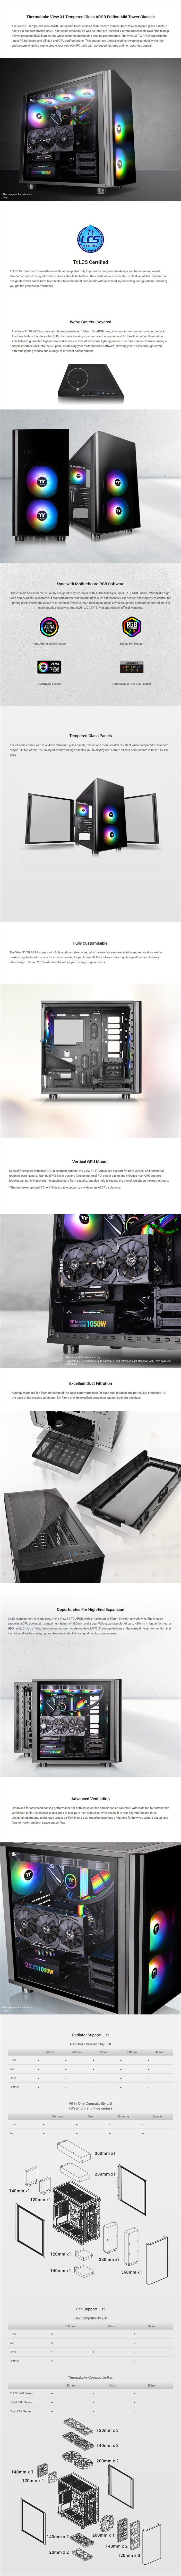 Thermaltake View 31 ARGB Tempered Glass Mid-Tower ATX Case - Overview 1